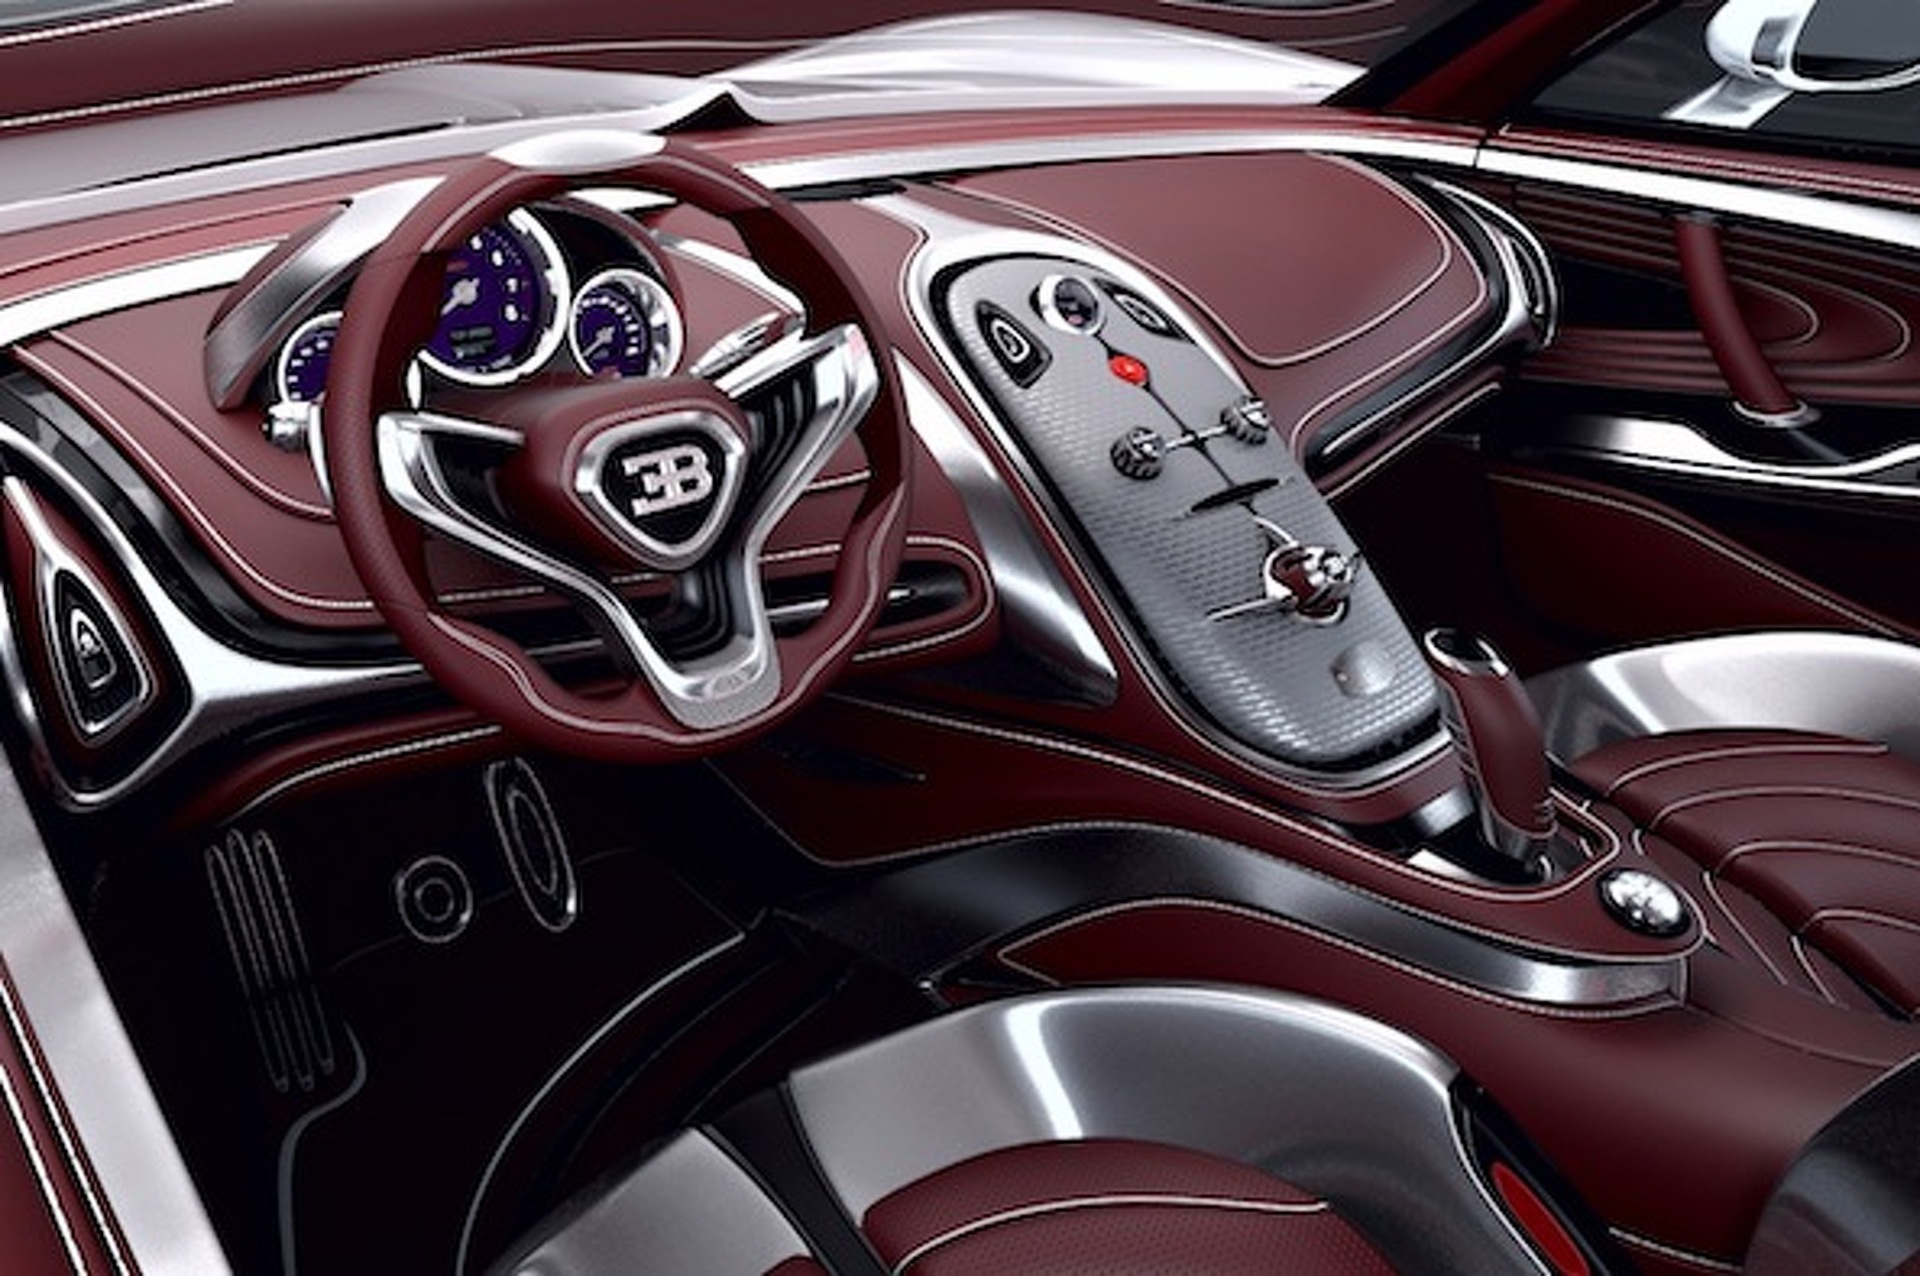 Bugatti Gangloff Concept: A Vision of the Veyron?